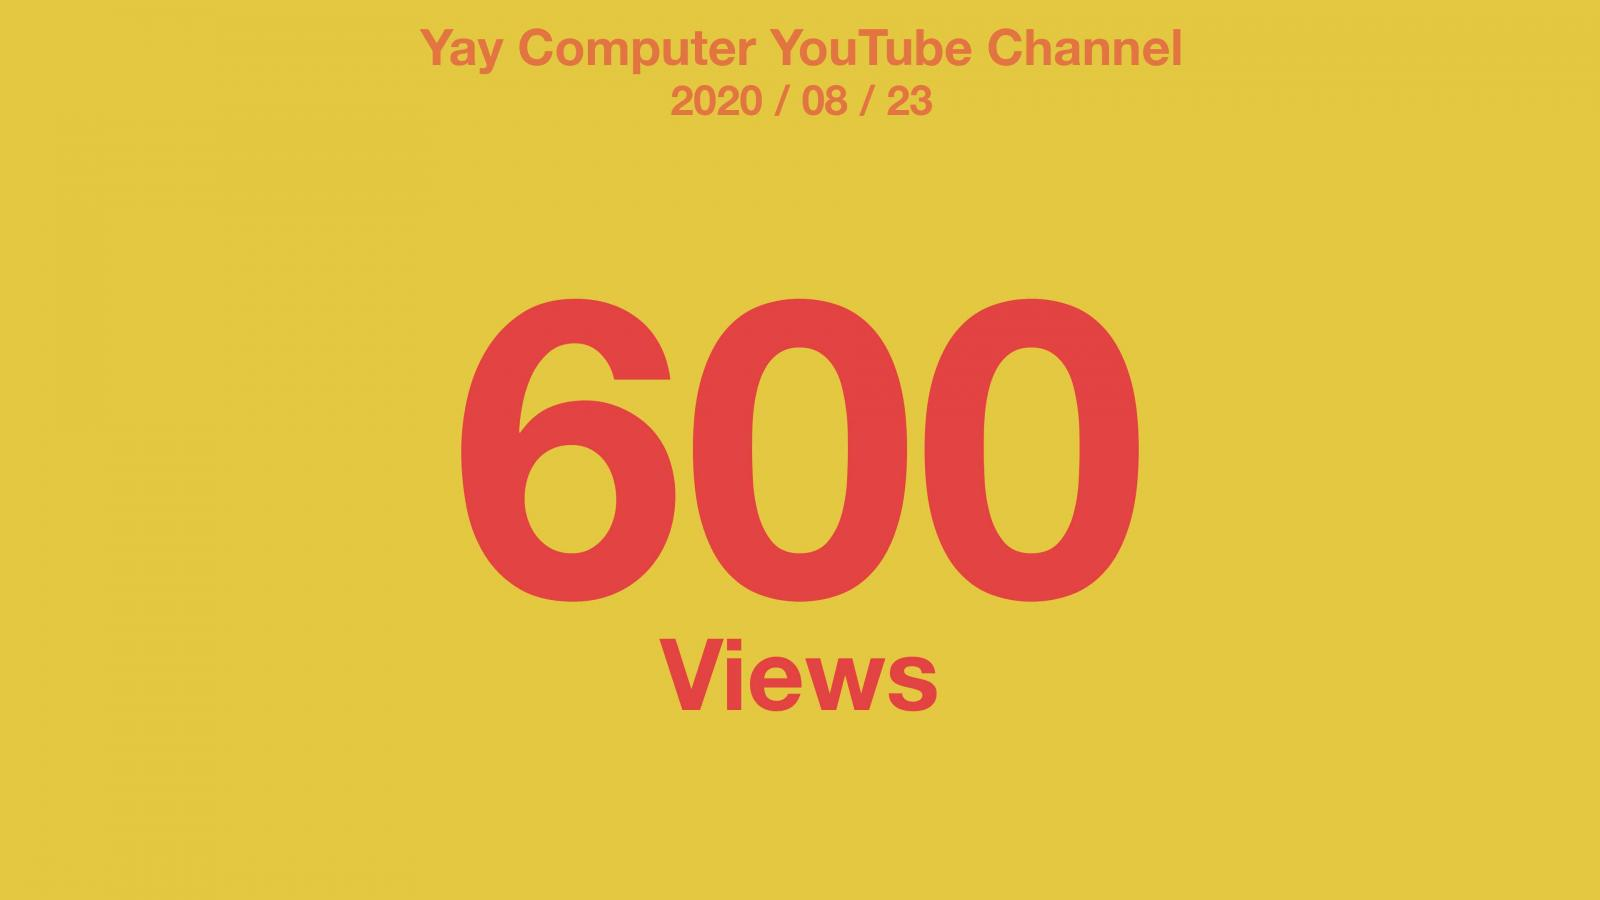 Yellow background with red text: Yay Computer YouTube Channel 2020/08/23 600 Views